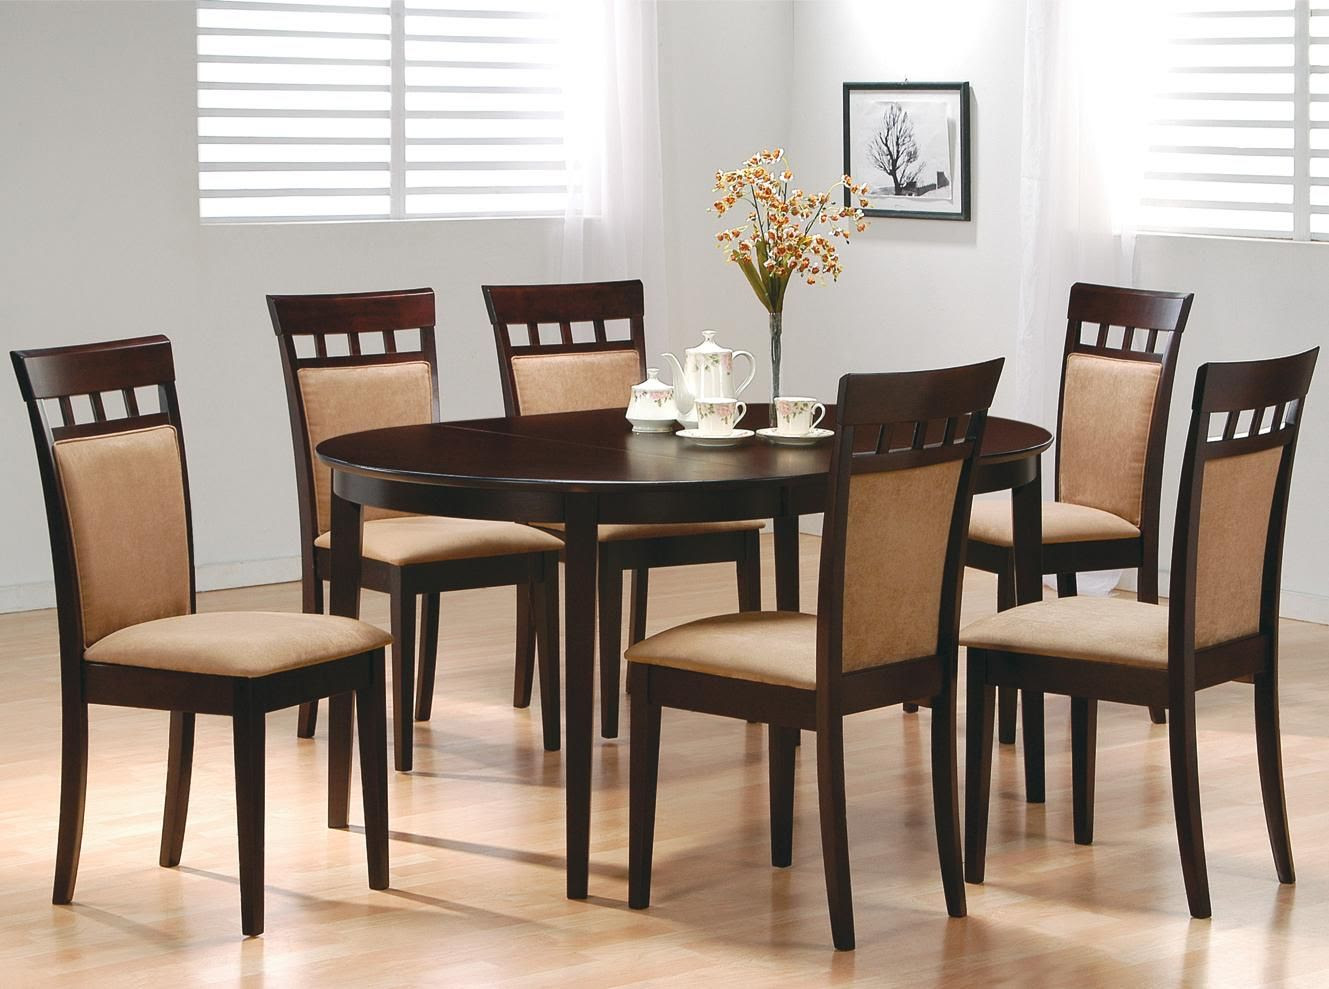 Hyde 5 Piece Modern Espresso Dining Table and Cushion Back ...